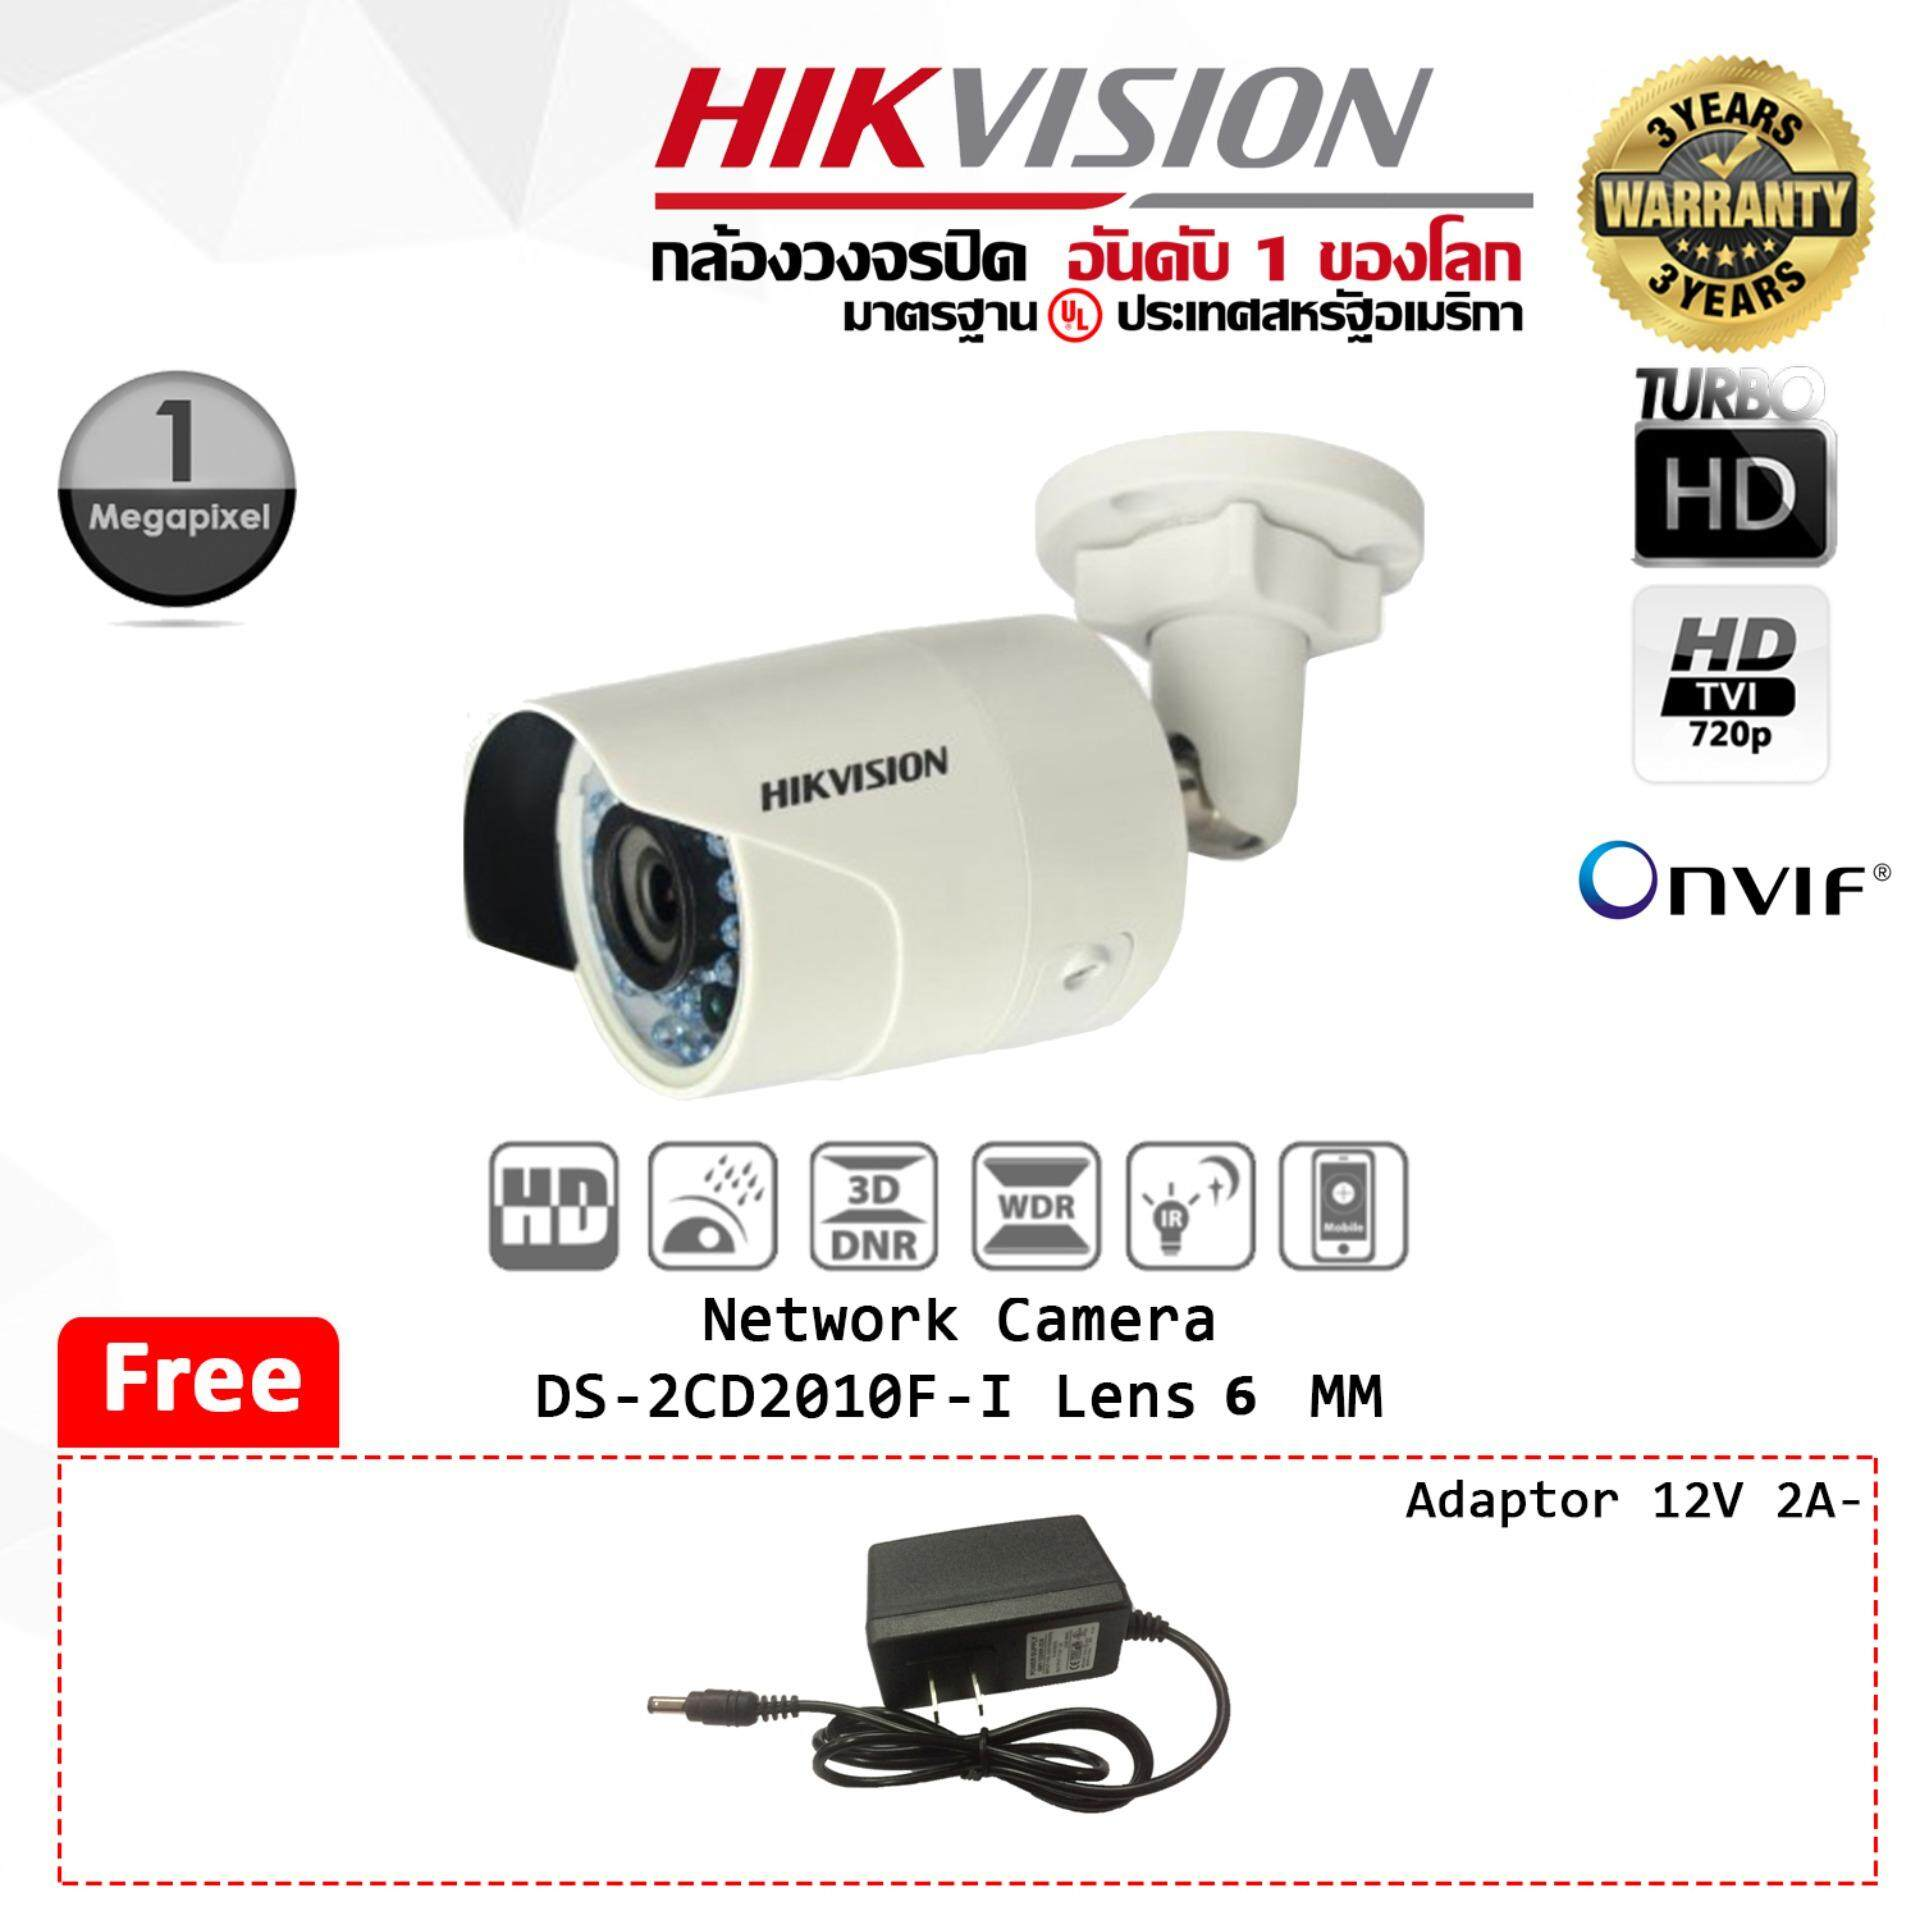 กล้องวงจรปิด Hikvision Network Camera  DS-2CD2010F-I 1.3 MP IR Mini Bullet Camera Lens 6 mm  (IP) ฟรี Adaptor 12V 2A  KENPRO